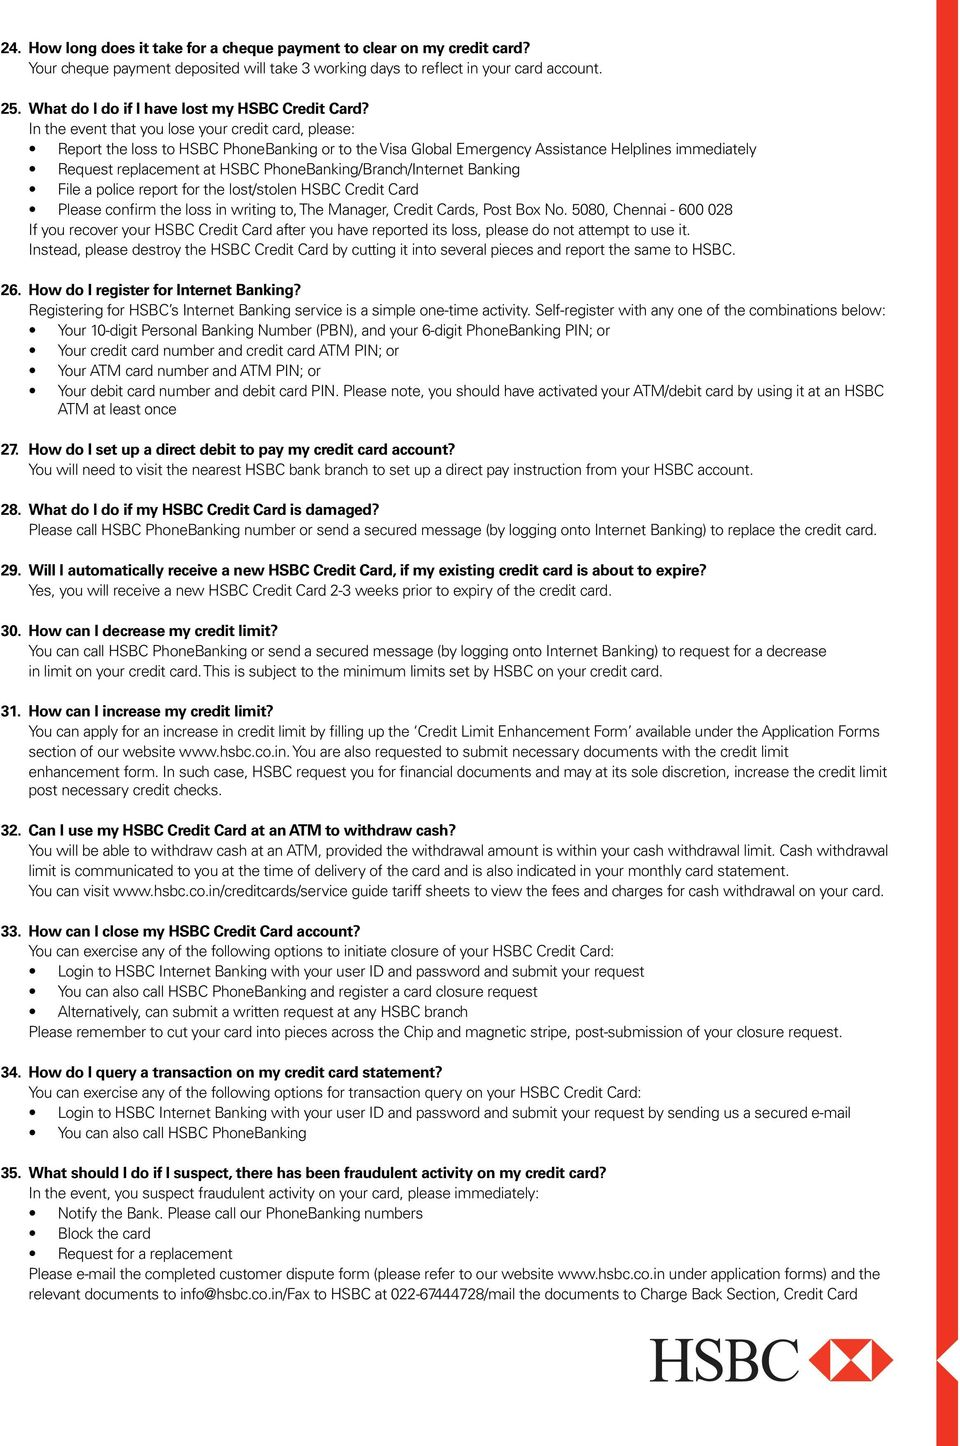 Frequently Asked Questions (FAQs) on Credit Cards - PDF